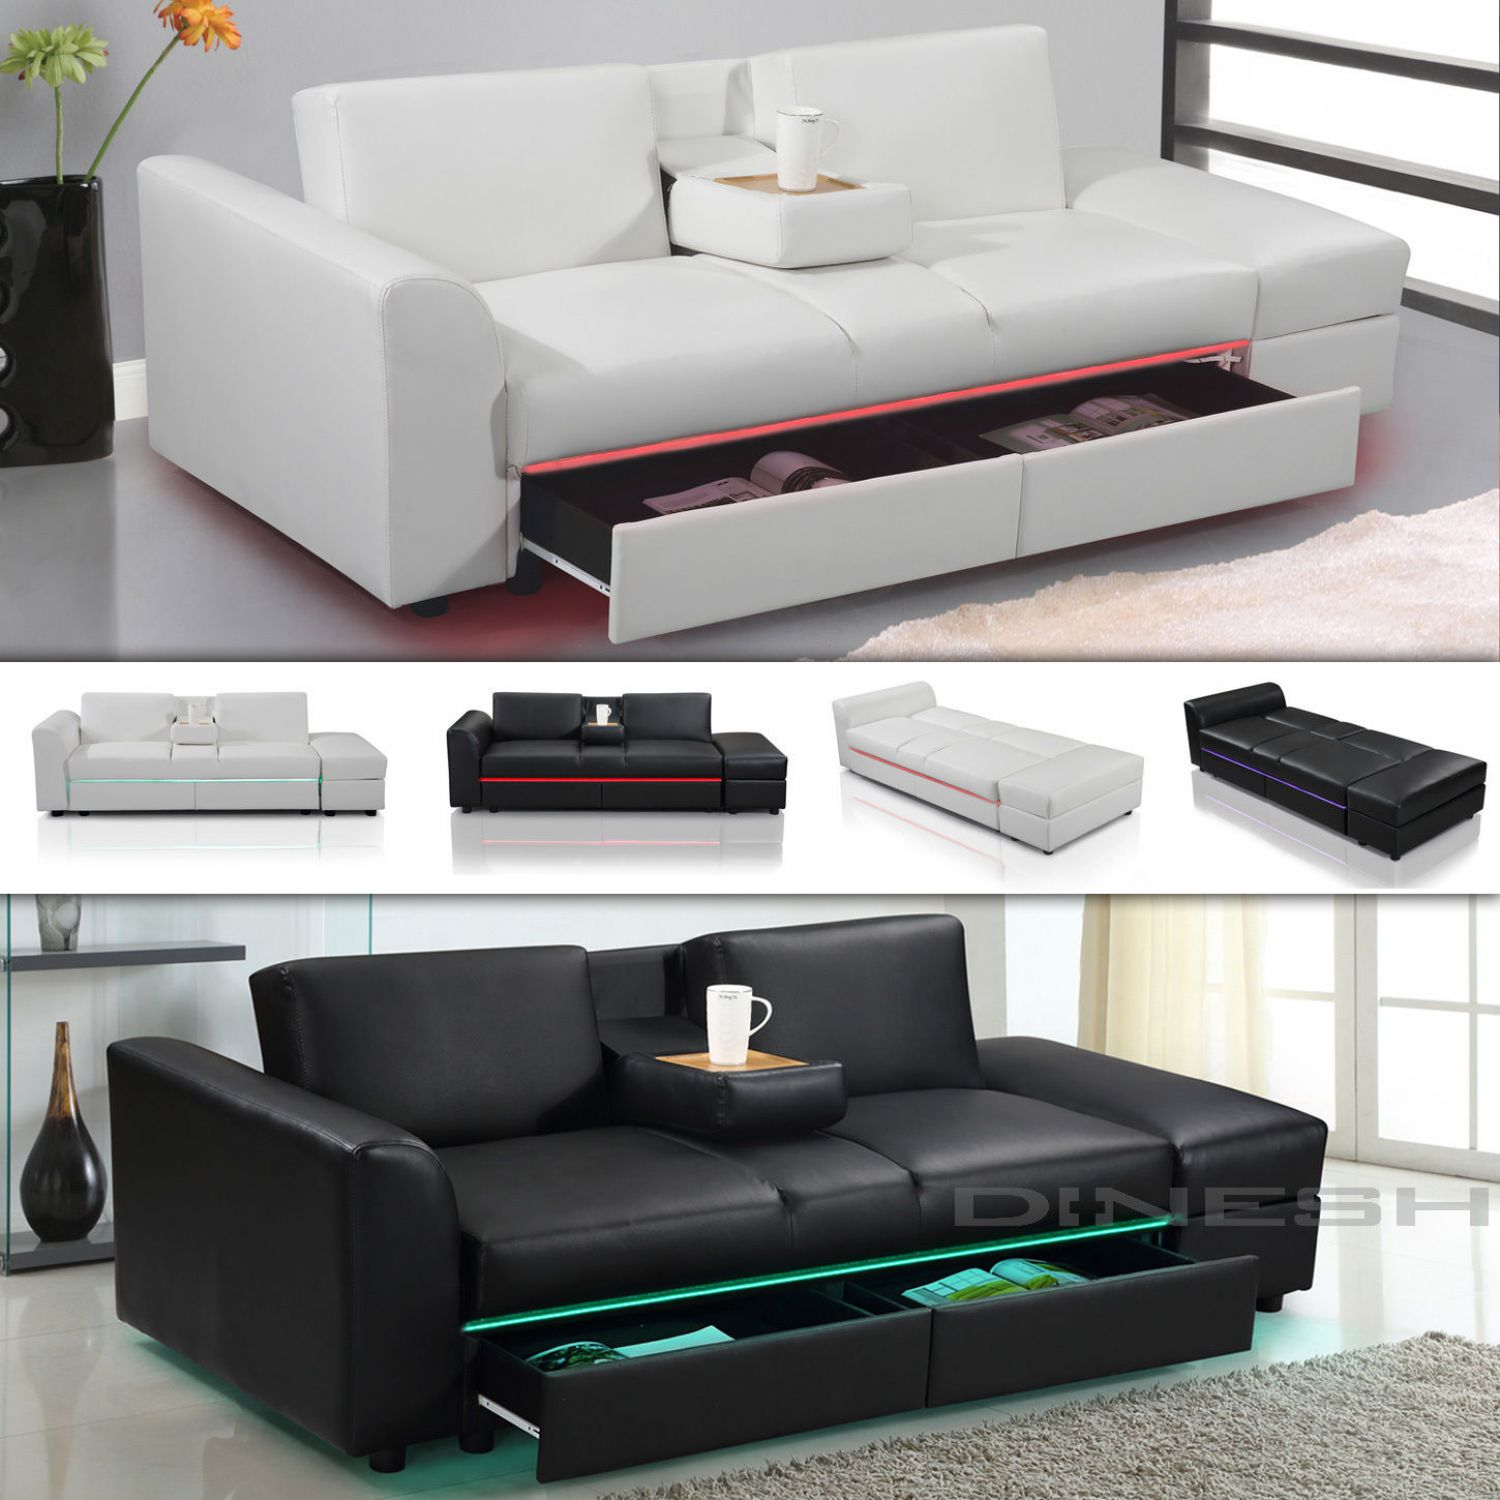 lincoln led funktionssofa schlafsofa sofa kunstleder bettsofa lounge couch ebay. Black Bedroom Furniture Sets. Home Design Ideas